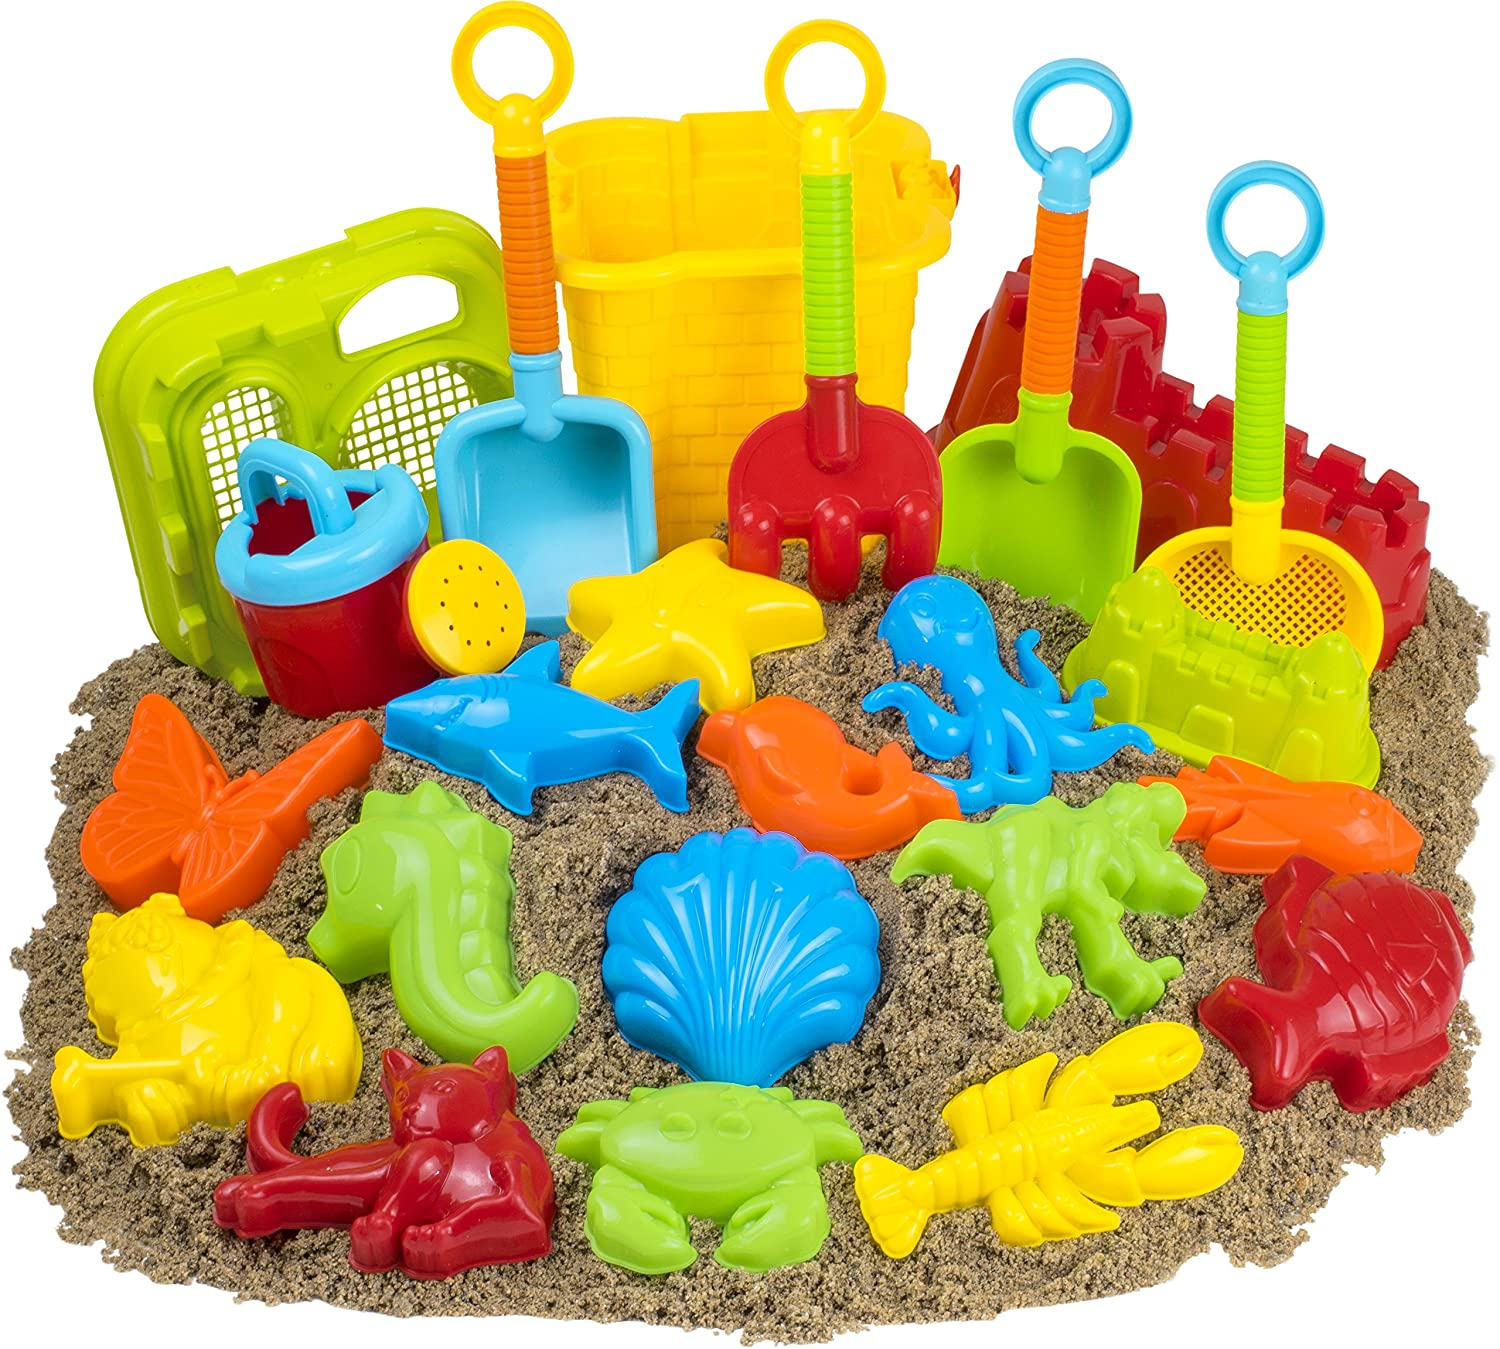 amazon com sandboxes u0026 accessories toys u0026 games sandboxes